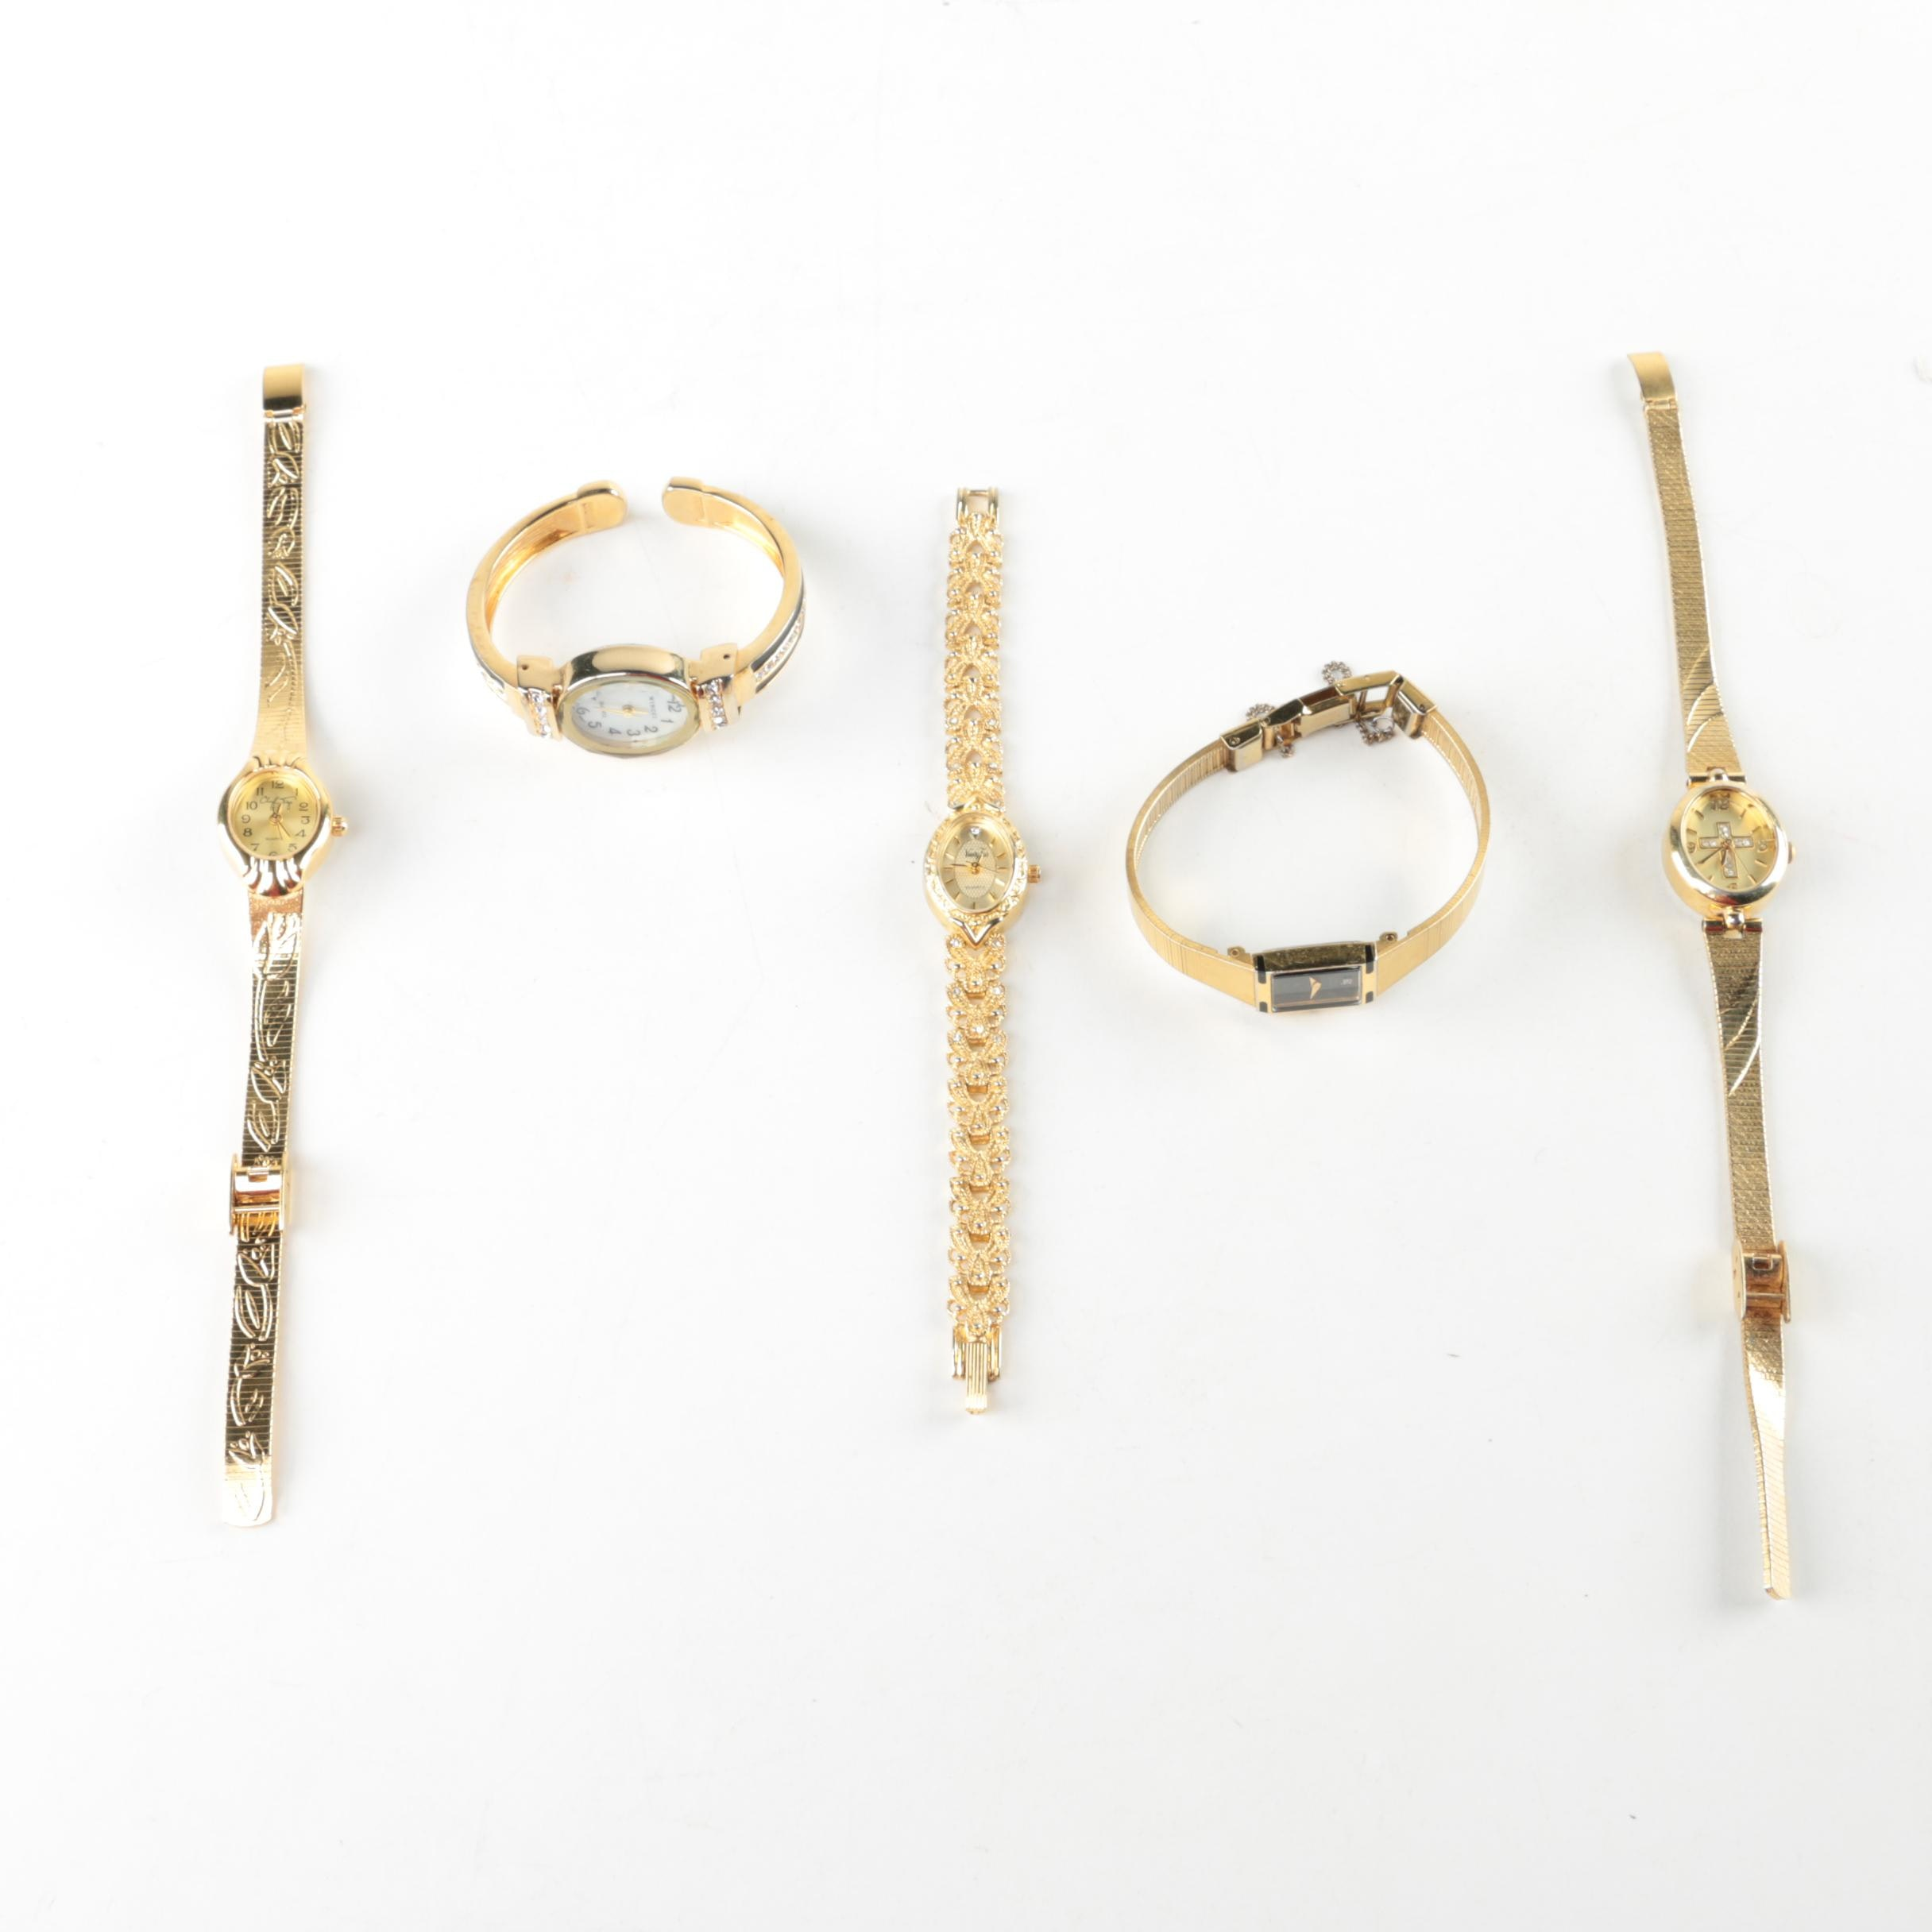 Gold Tone Wristwatch Selection Featuring Citizen and Vanity Fair